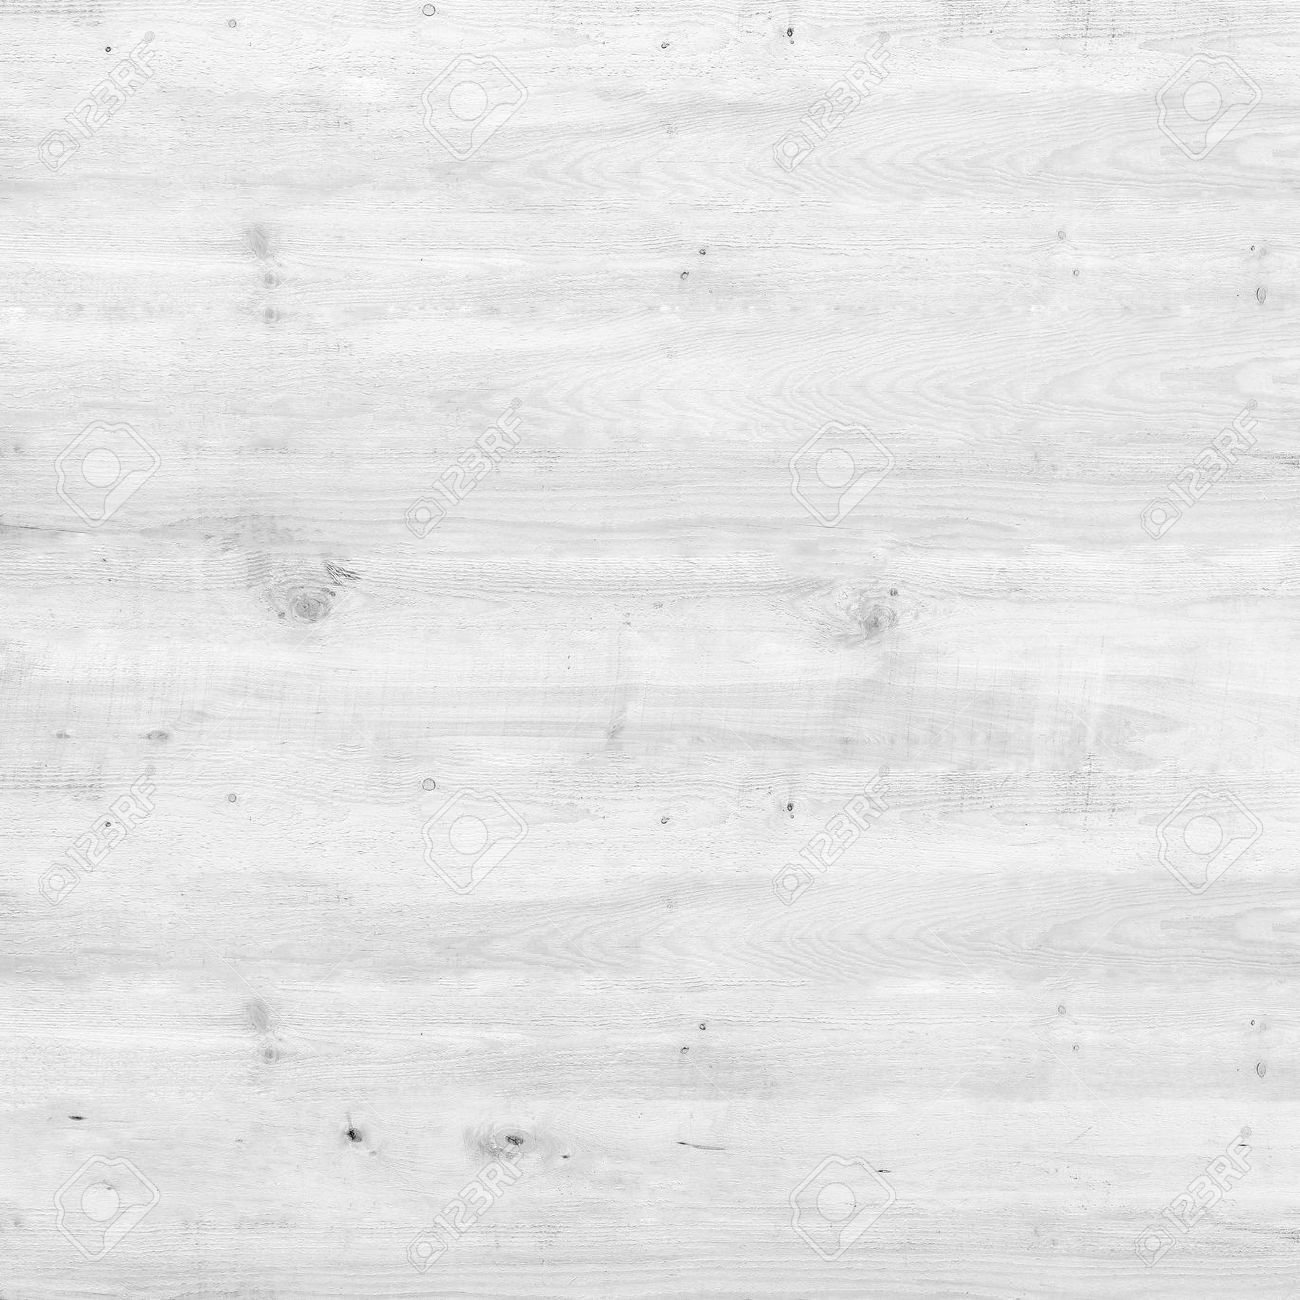 Wood pine plank white texture background Stock Photo - 30155388